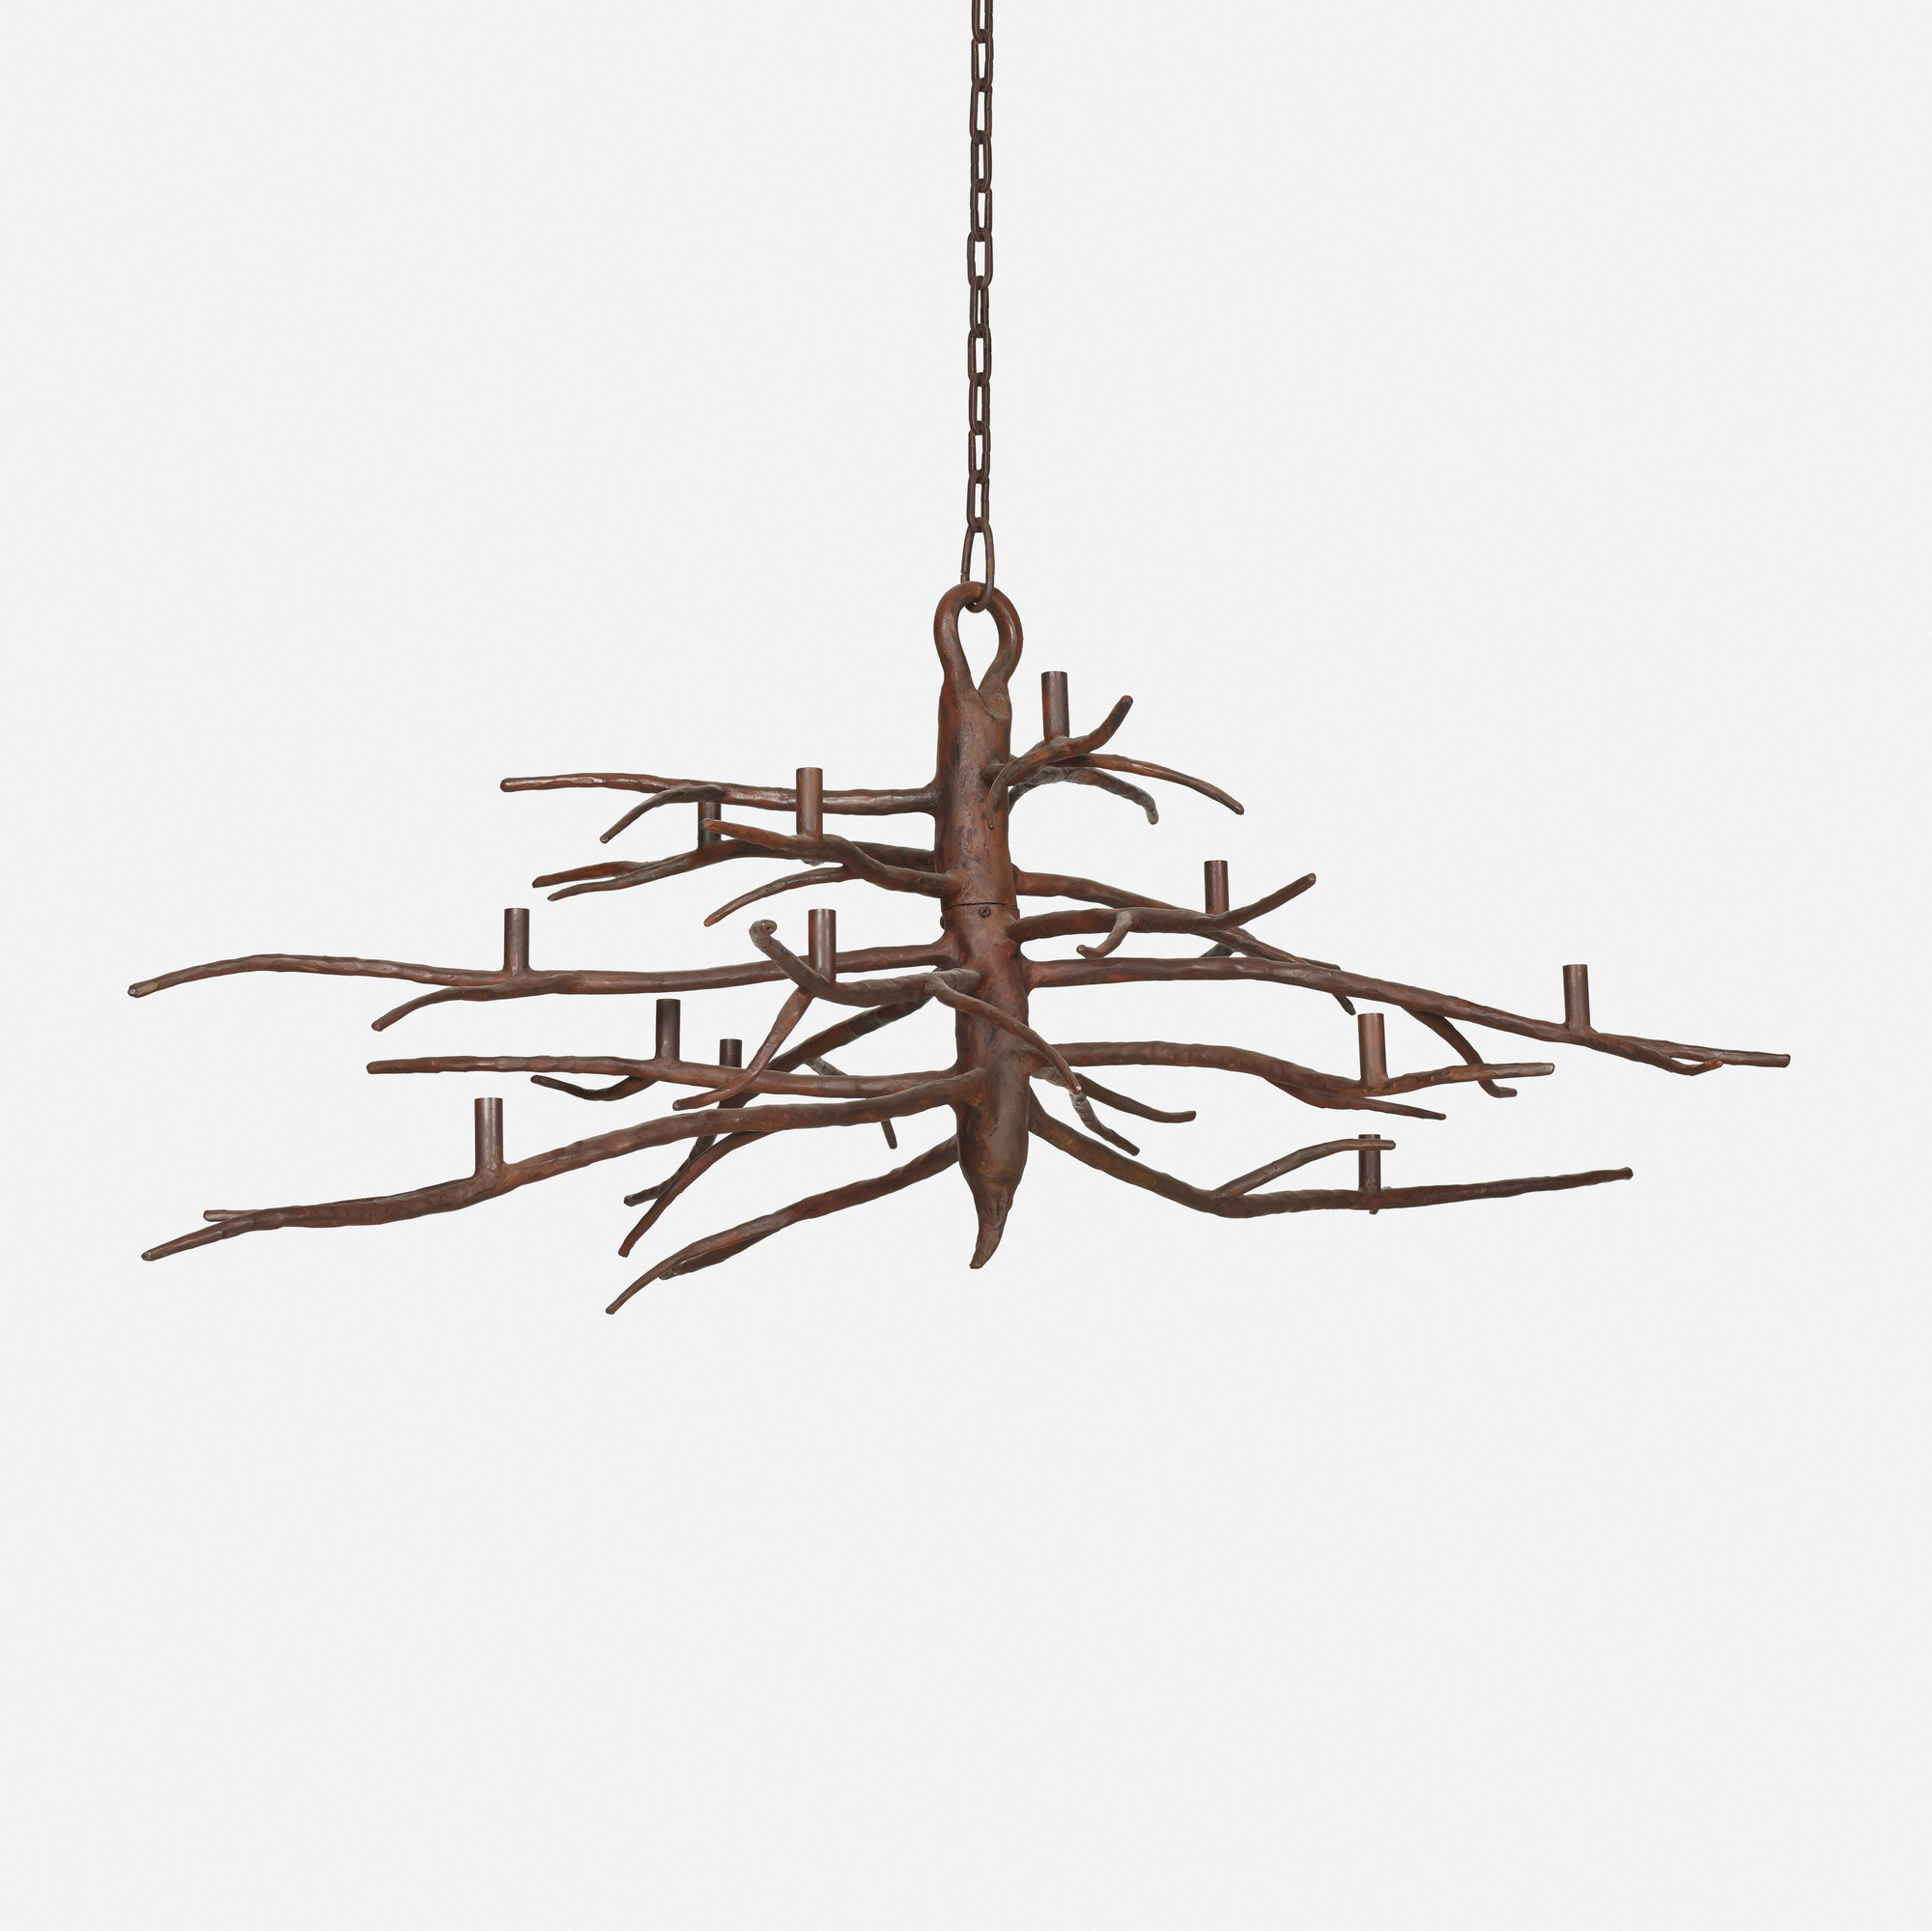 Wrought iron pine cone chandelier chandelier designs wrought iron pine cone chandelier american hwy arubaitofo Choice Image